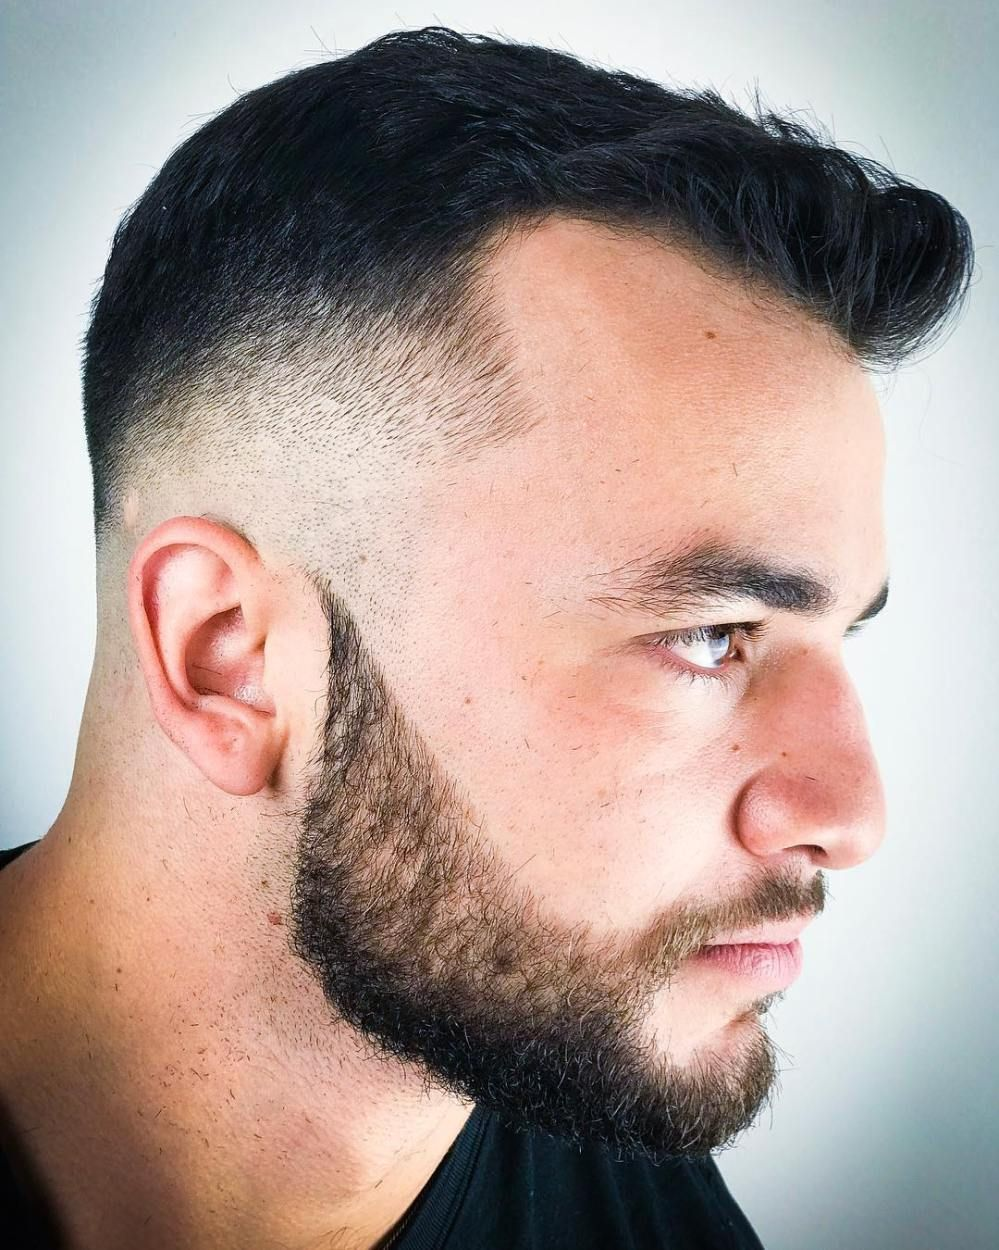 Haircut for men hairline  classy haircuts and hairstyles for balding men  haircut